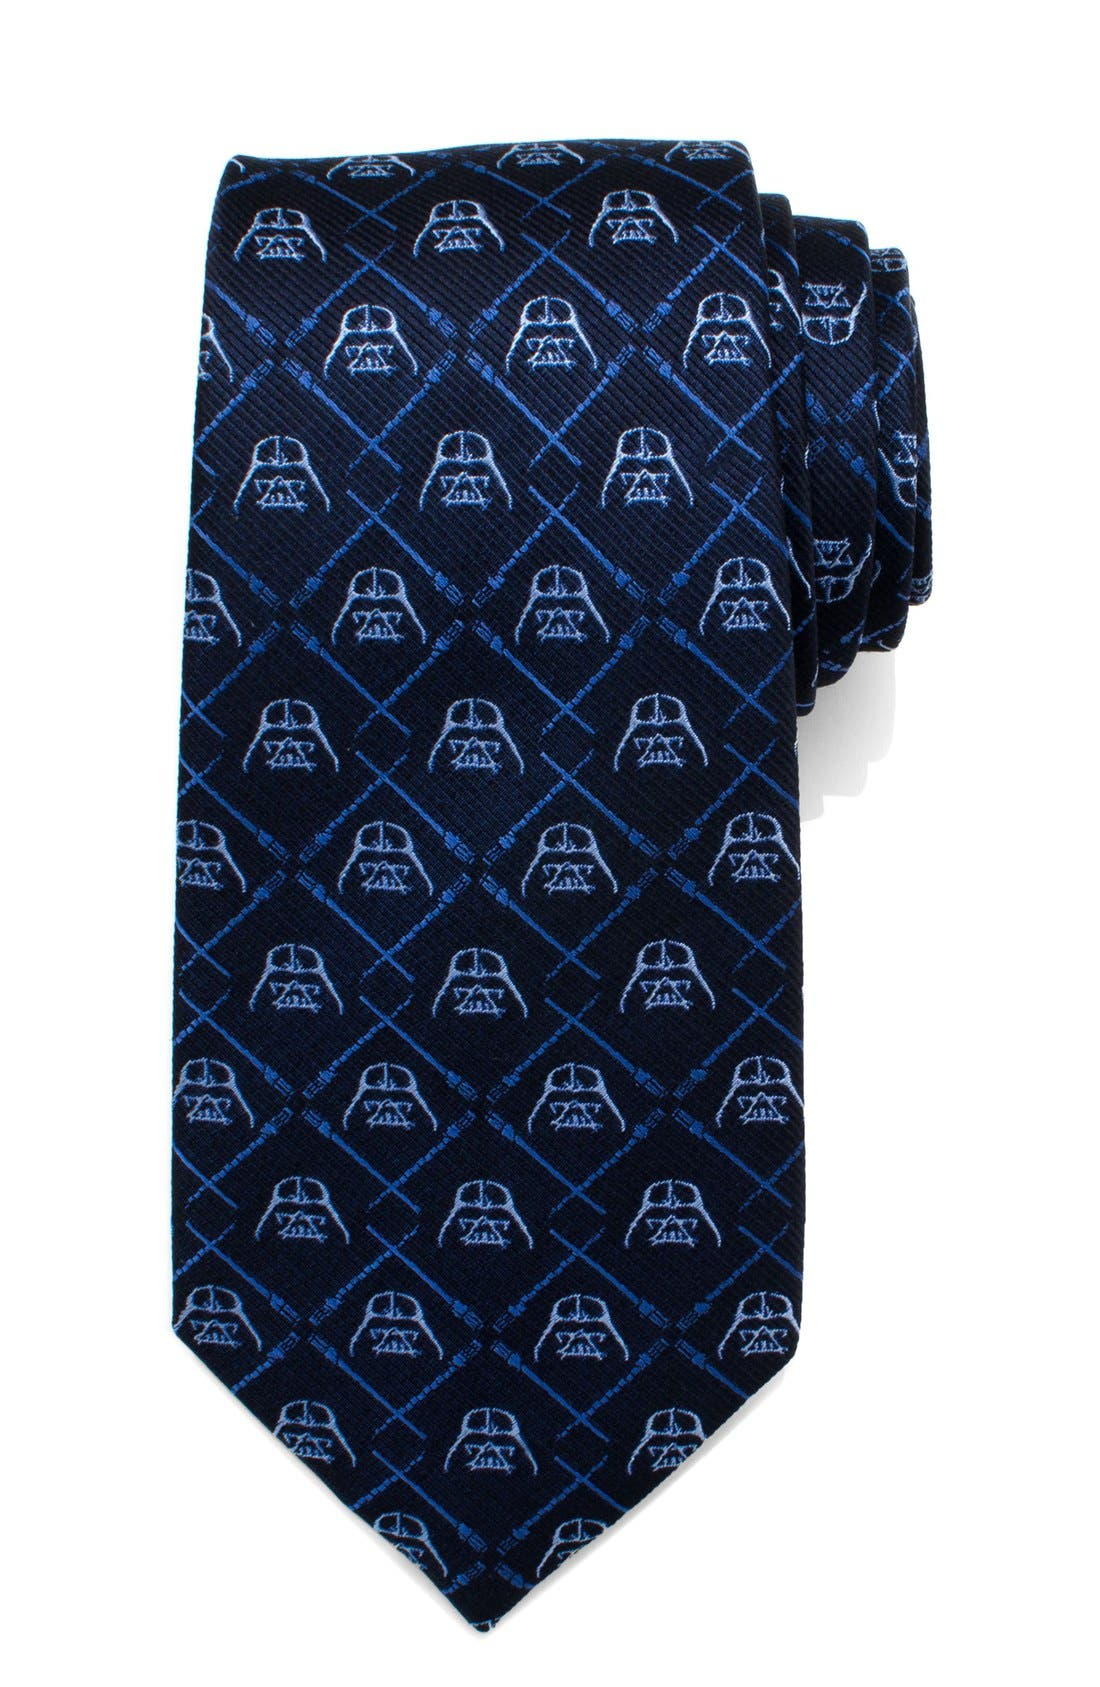 'Darth Vader' Silk Tie,                             Main thumbnail 1, color,                             BLUE